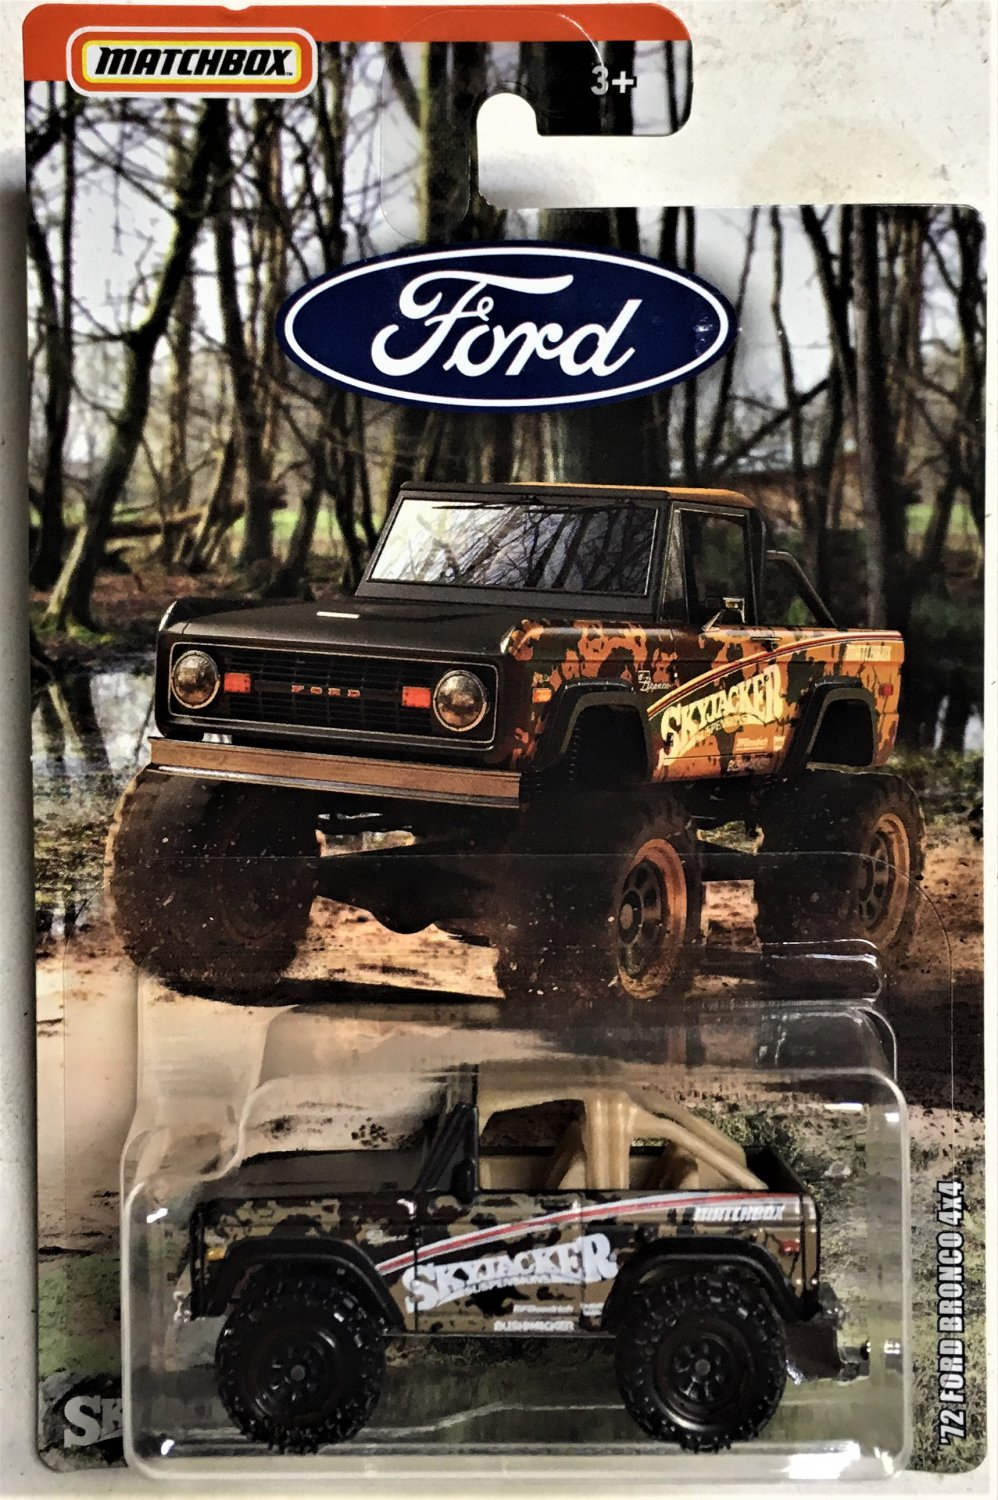 2019 Matchbox Ford #2 72 Ford Bronco 4x4